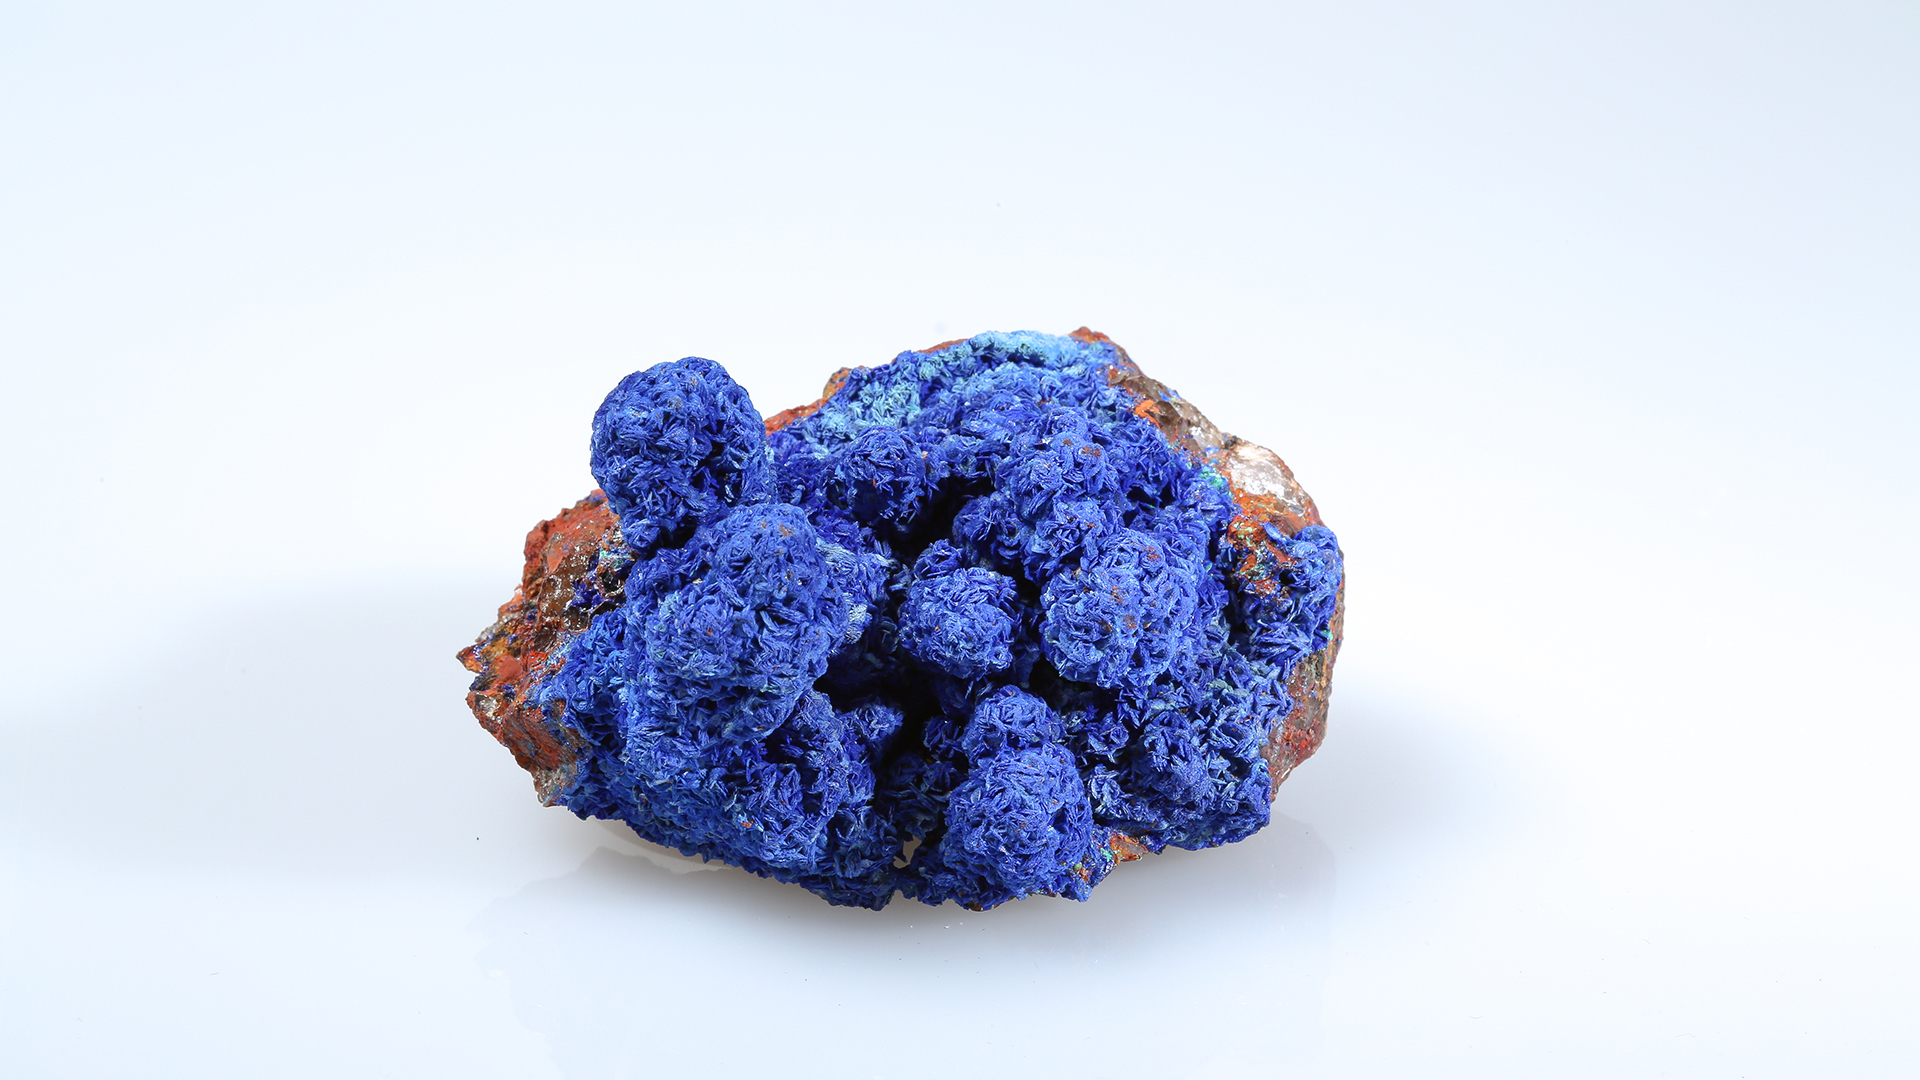 Azurite is a copper carbonate hydroxide mineral known for its deep-blue color.